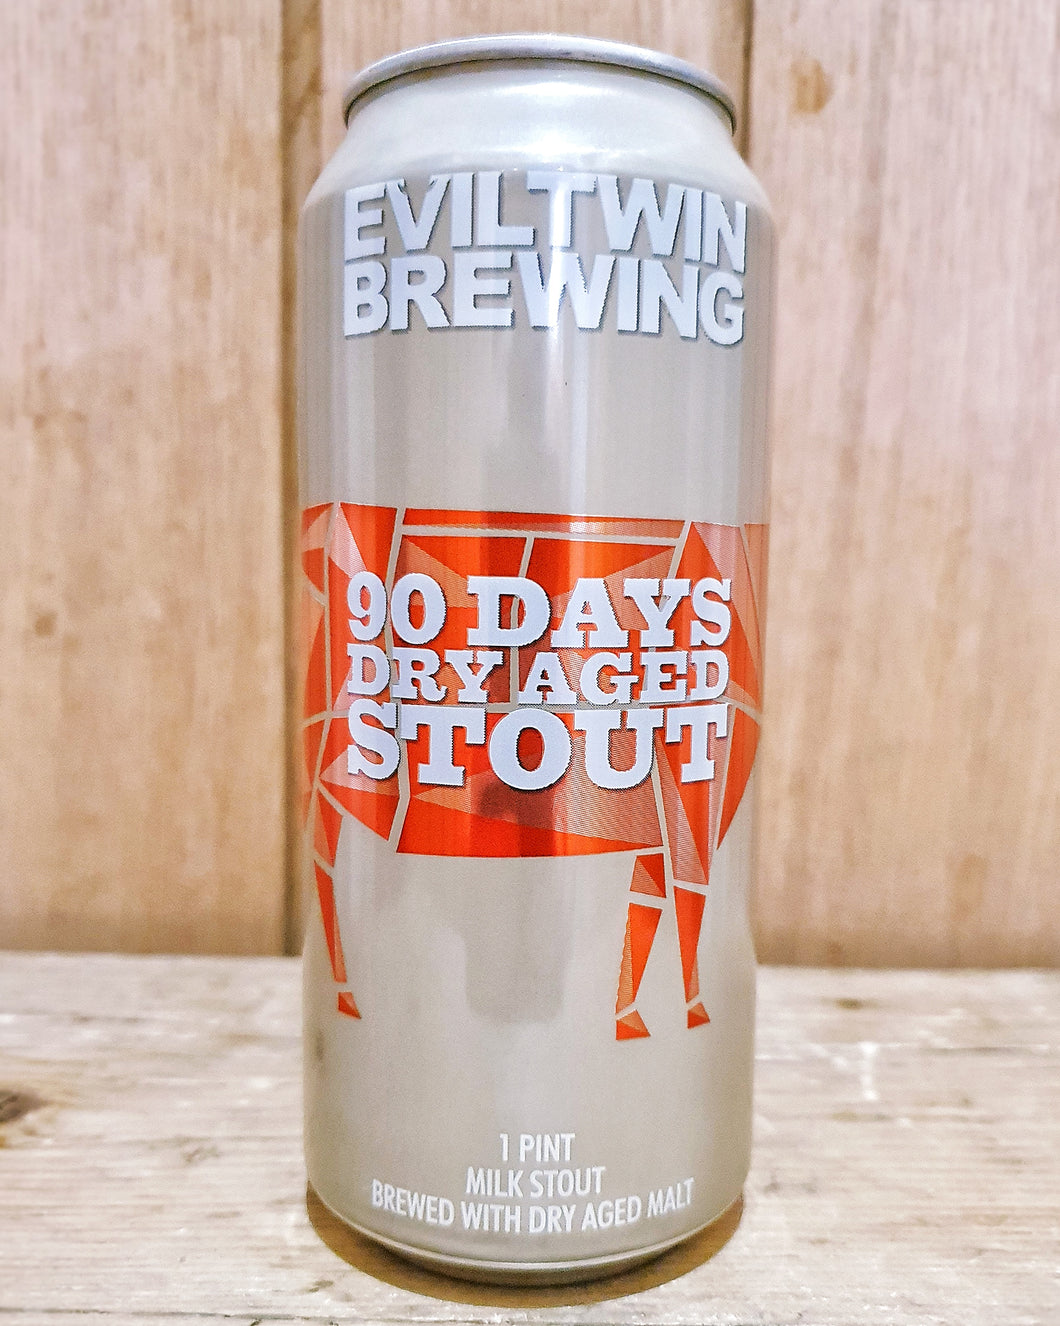 Evil Twin Brewing - 90 Days Dry Aged Stout